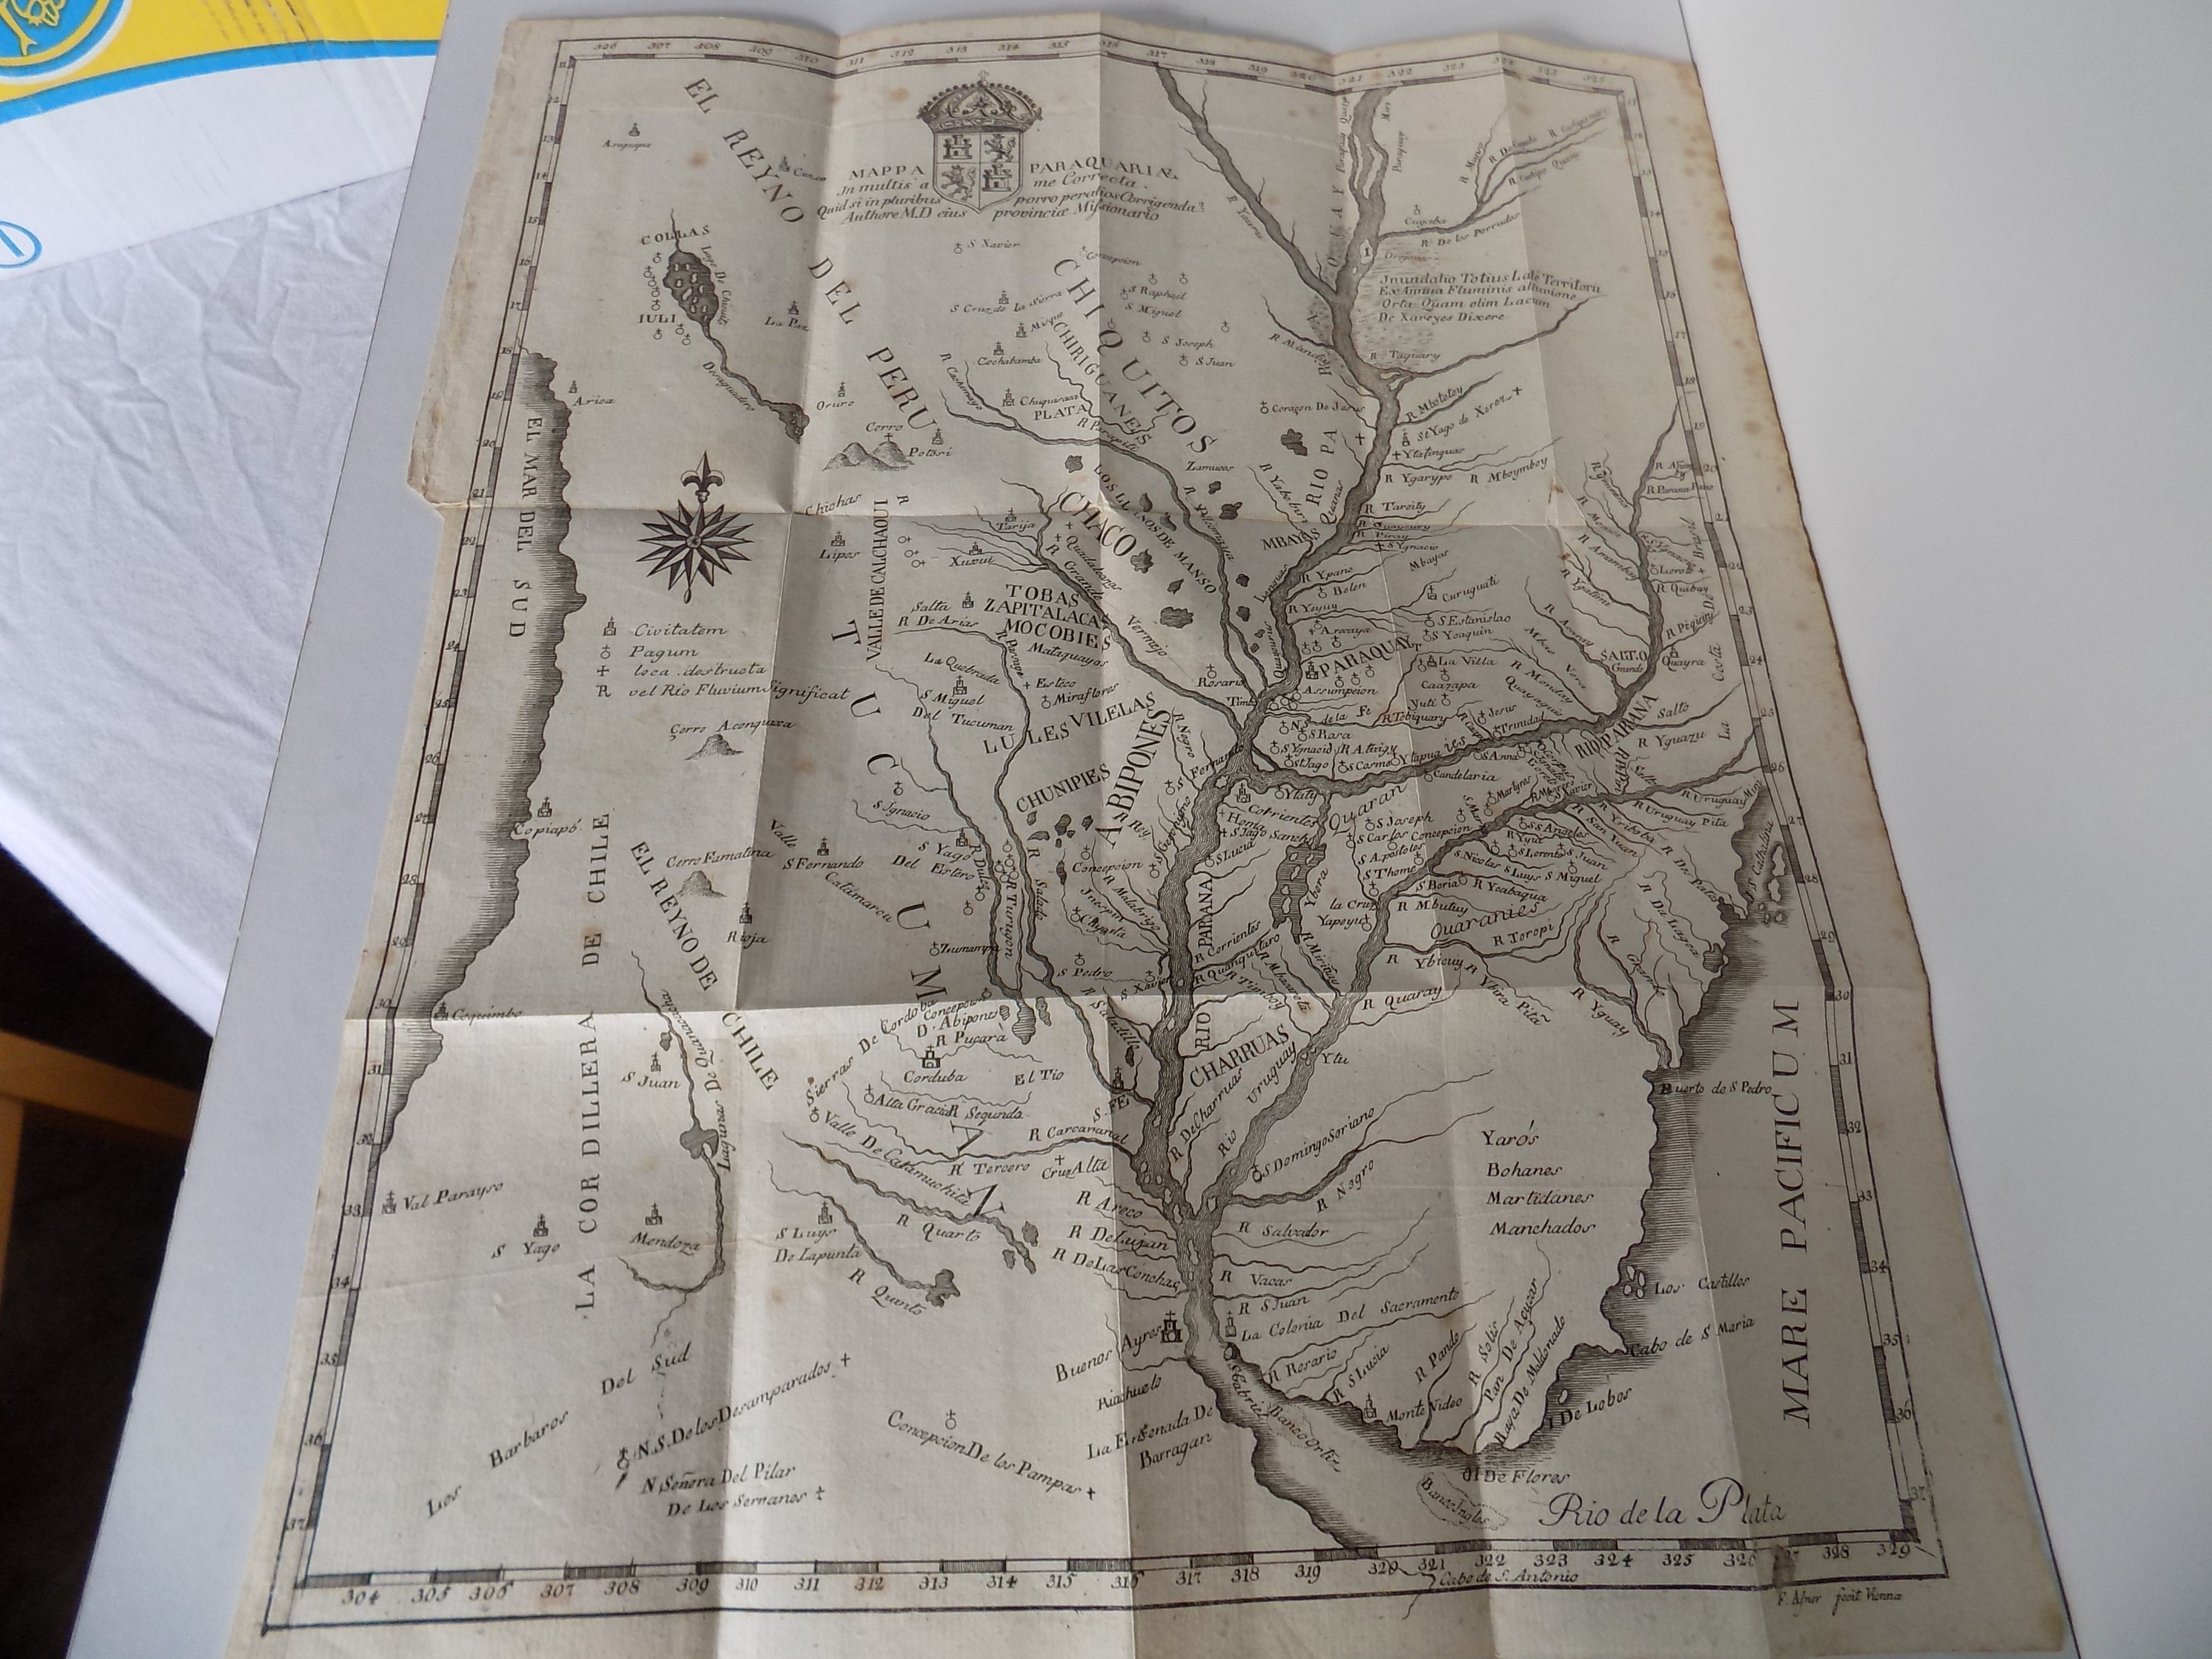 Paraguay:] Mappa Paraquariae. In multis a me: Dobrizhoffer, Martin (hier